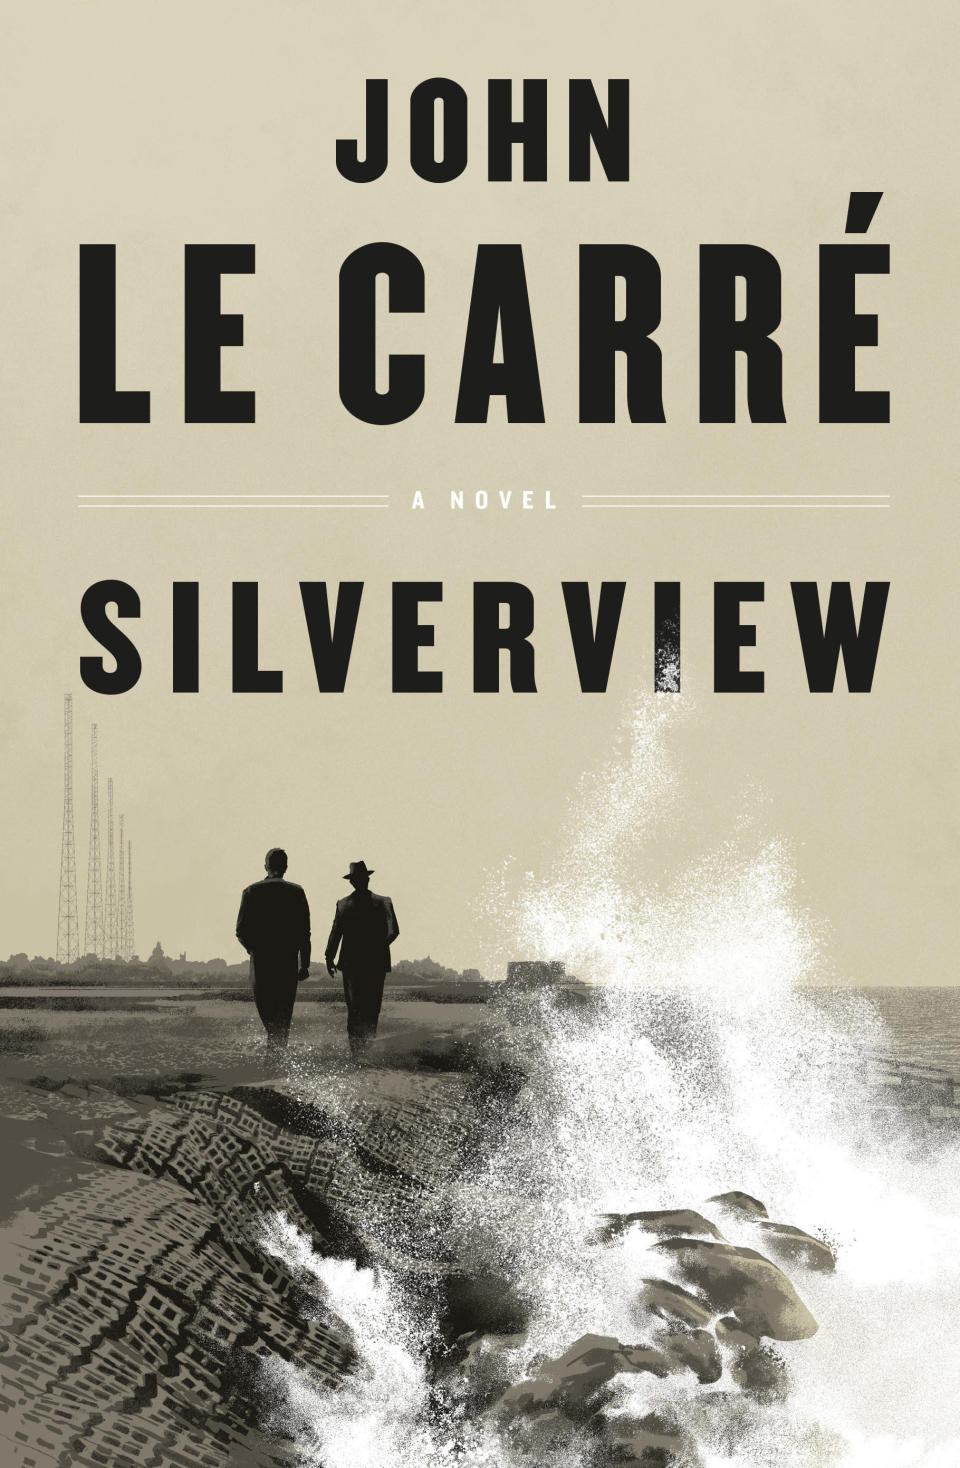 """This cover image released by Viking shows """"Silverview,"""" a novel by John le Carré, releasing Oct. 12. (Viking via AP)"""